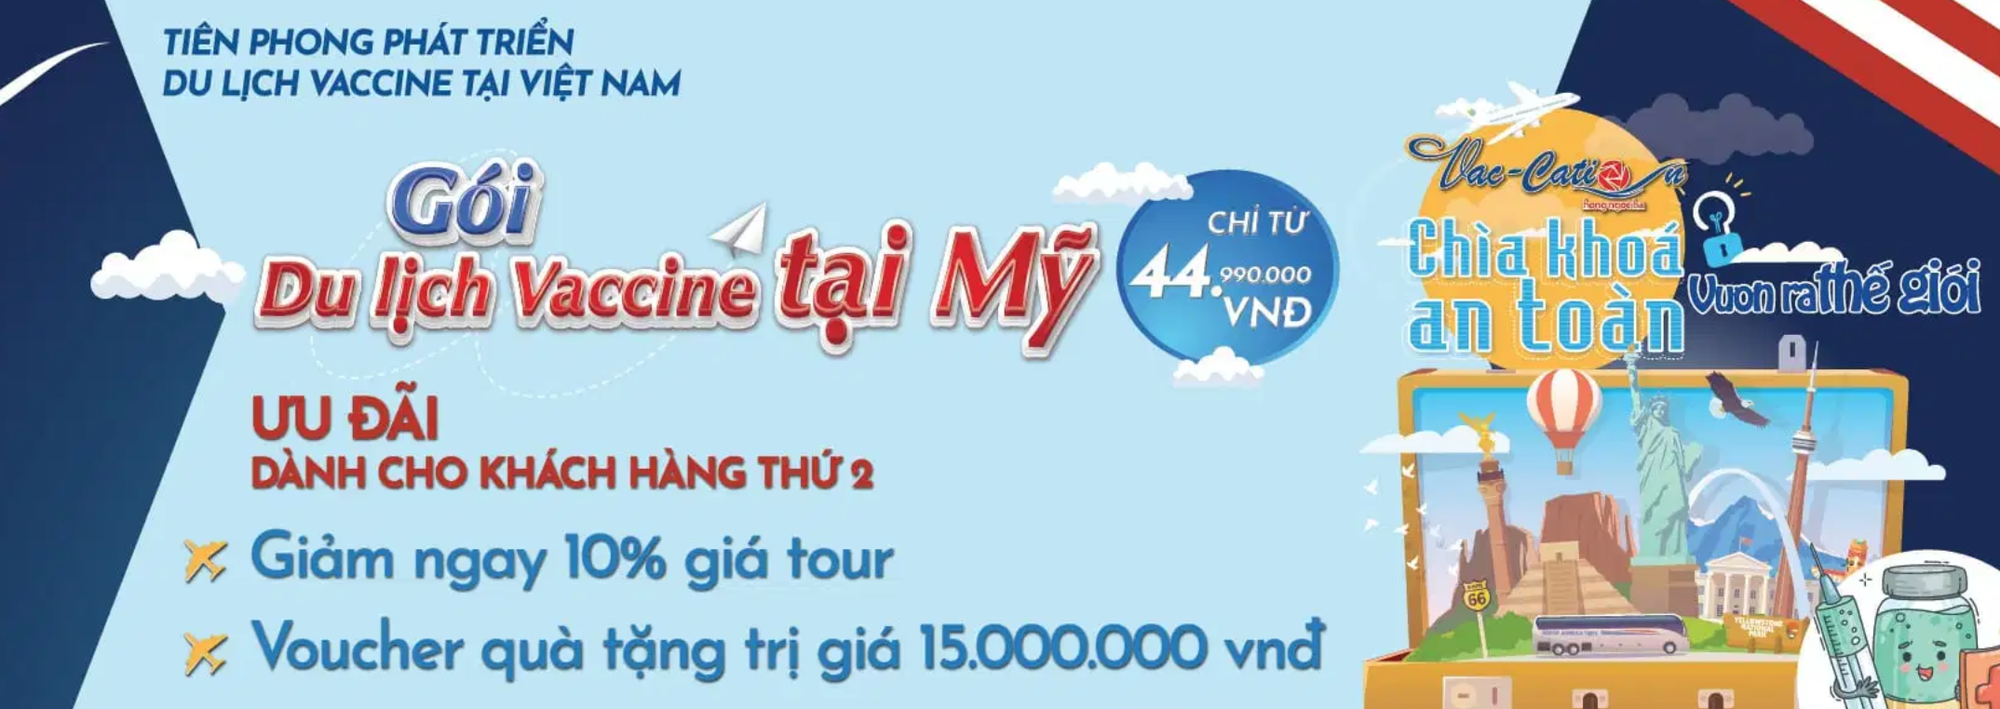 Vietnamese travel firm offers COVID-19 vaccination tours to US